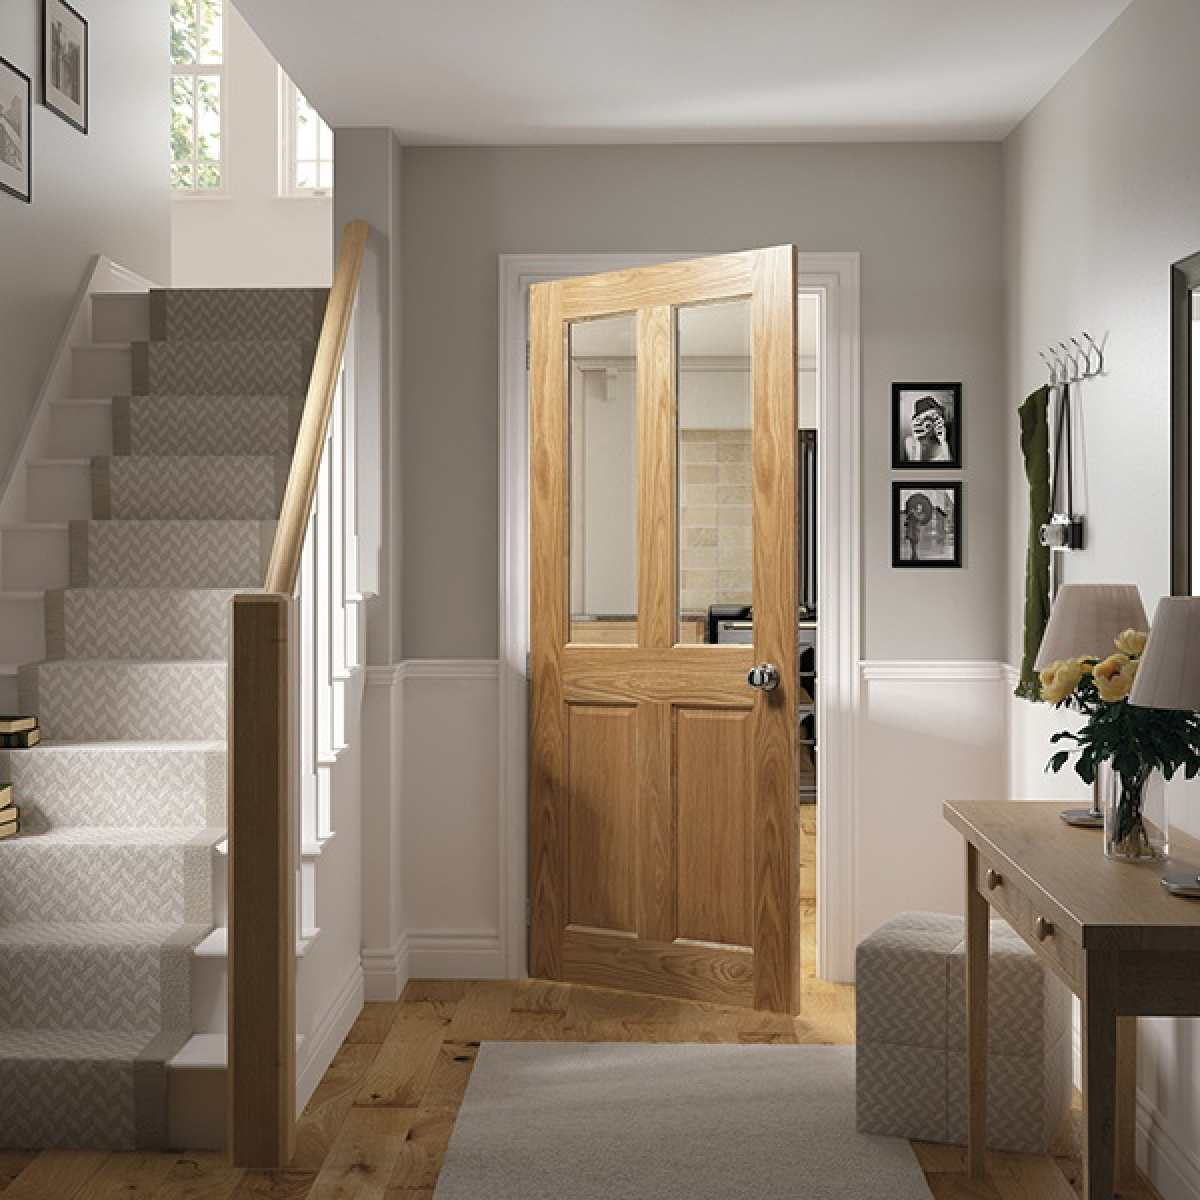 Bury Glazed oak lifestyle websters Image by Websters Timber